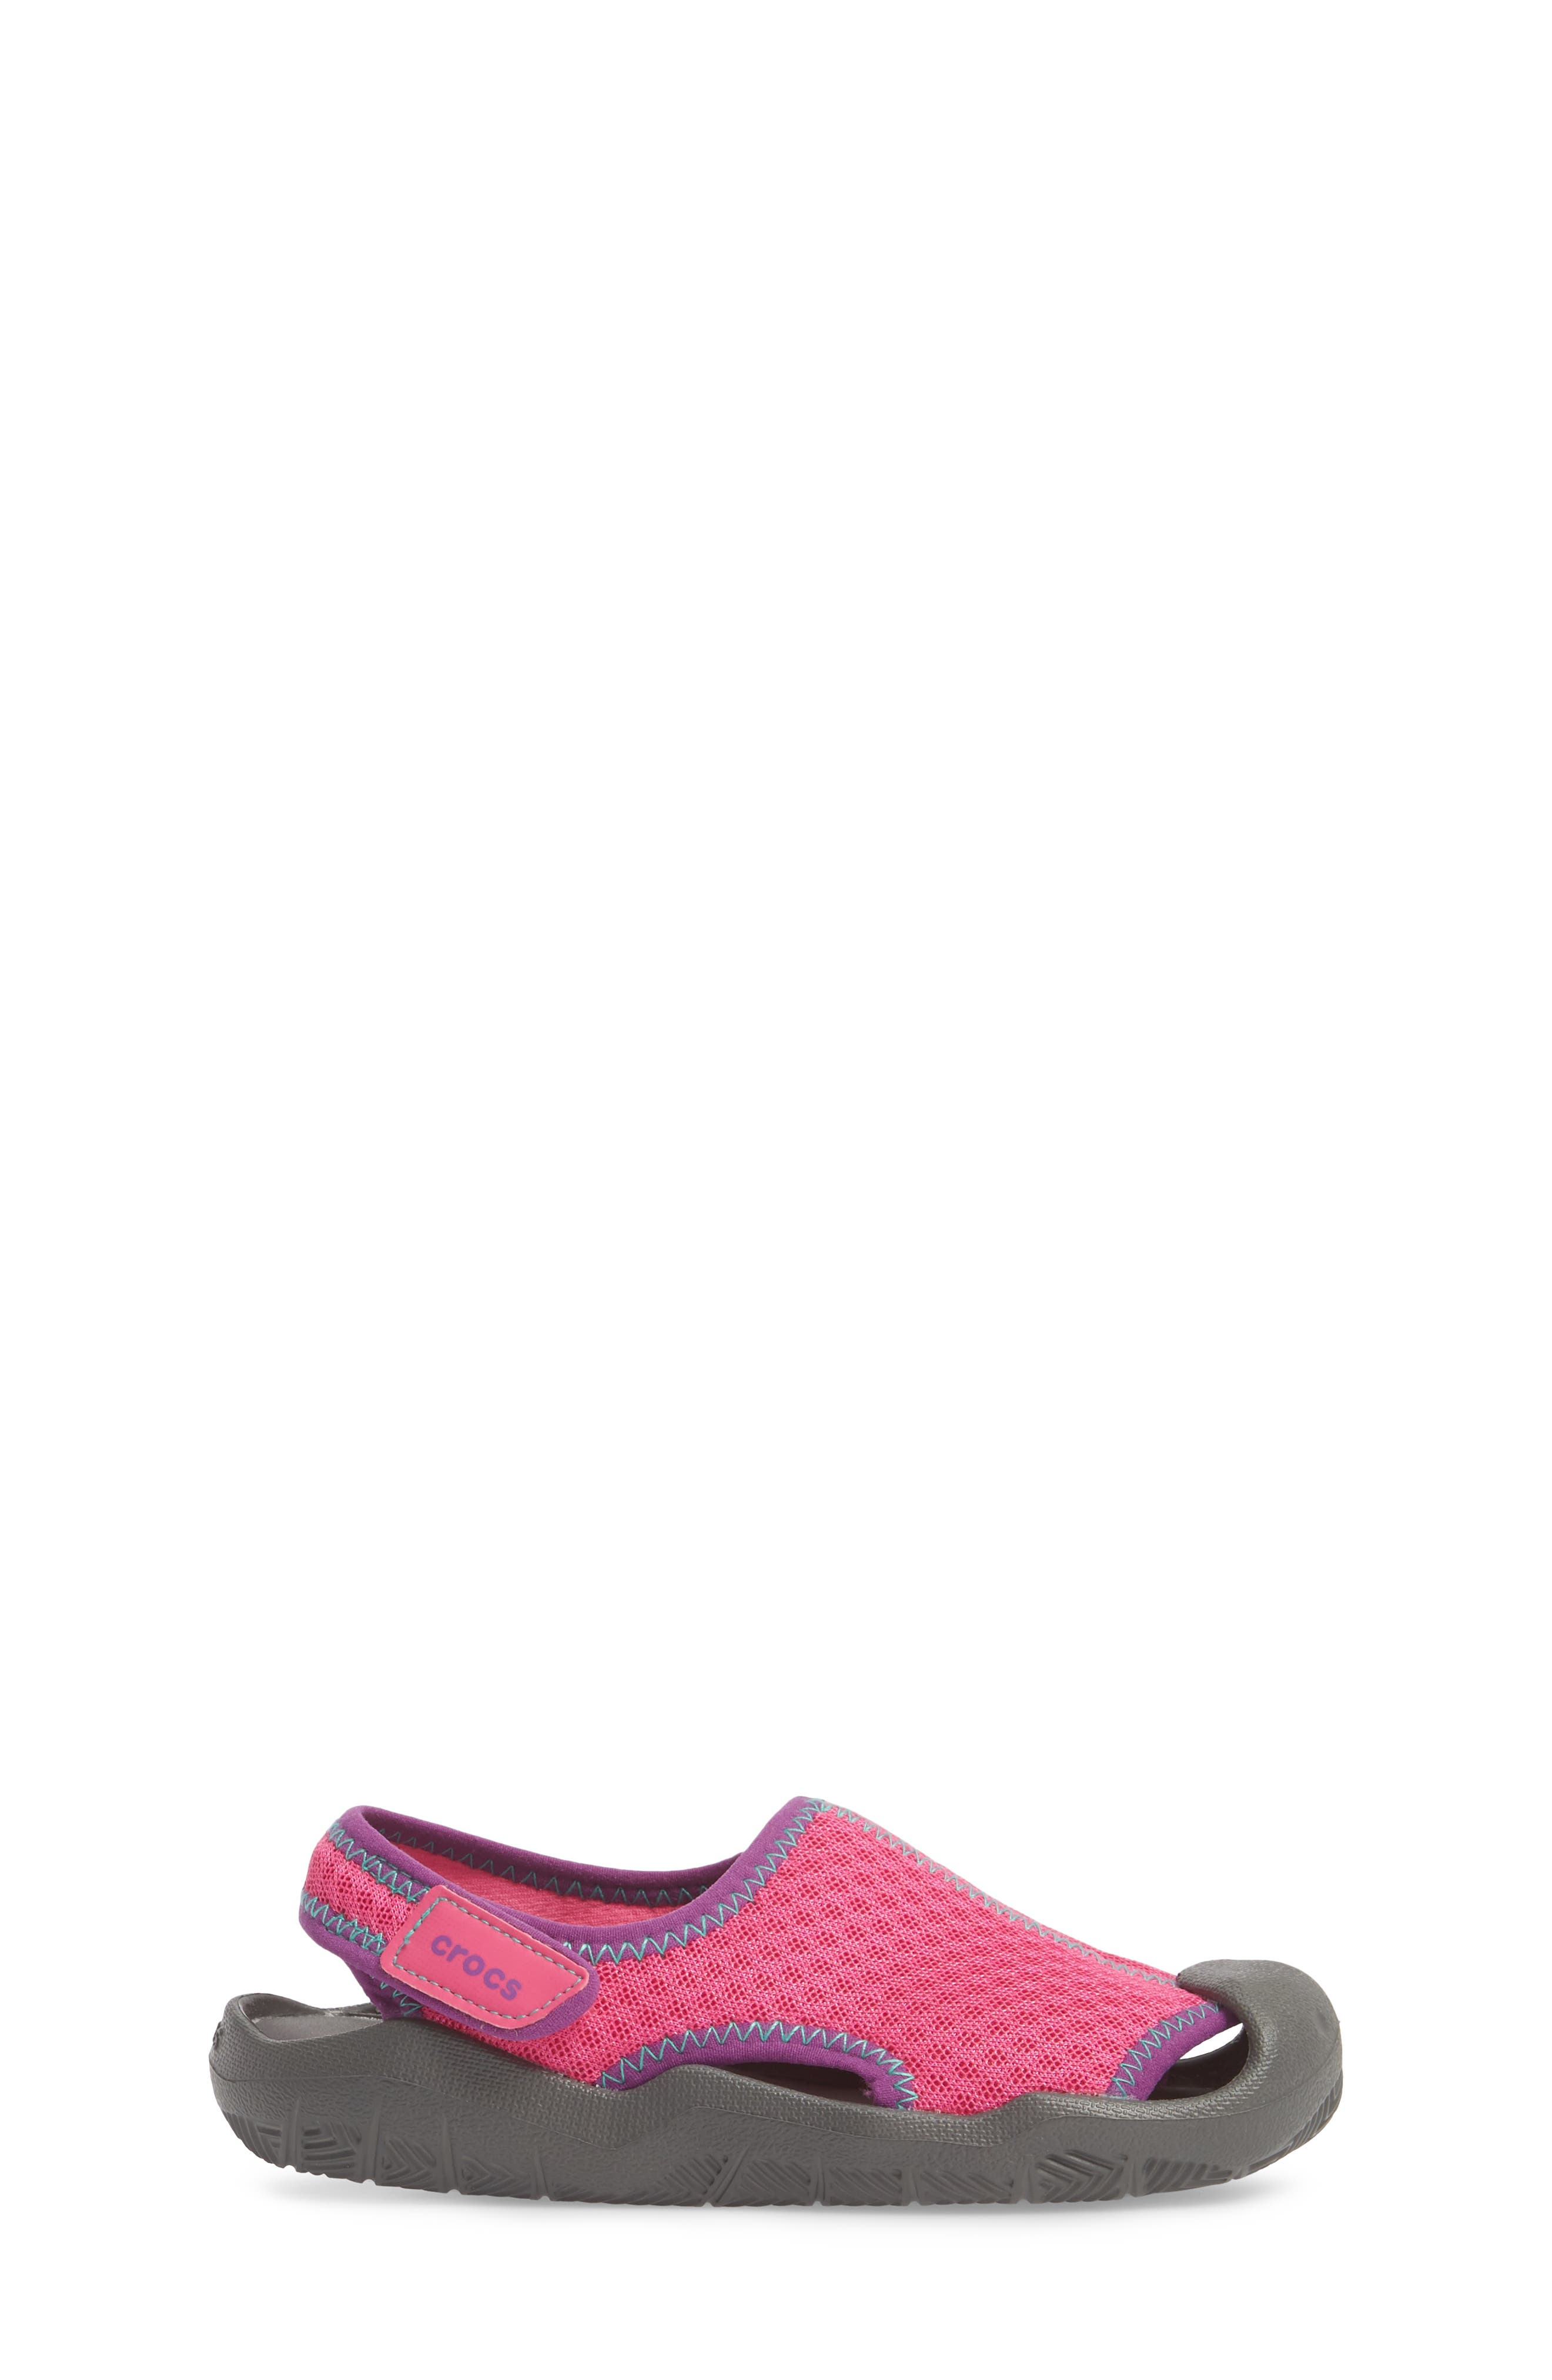 Swiftwater Sandal,                             Alternate thumbnail 17, color,